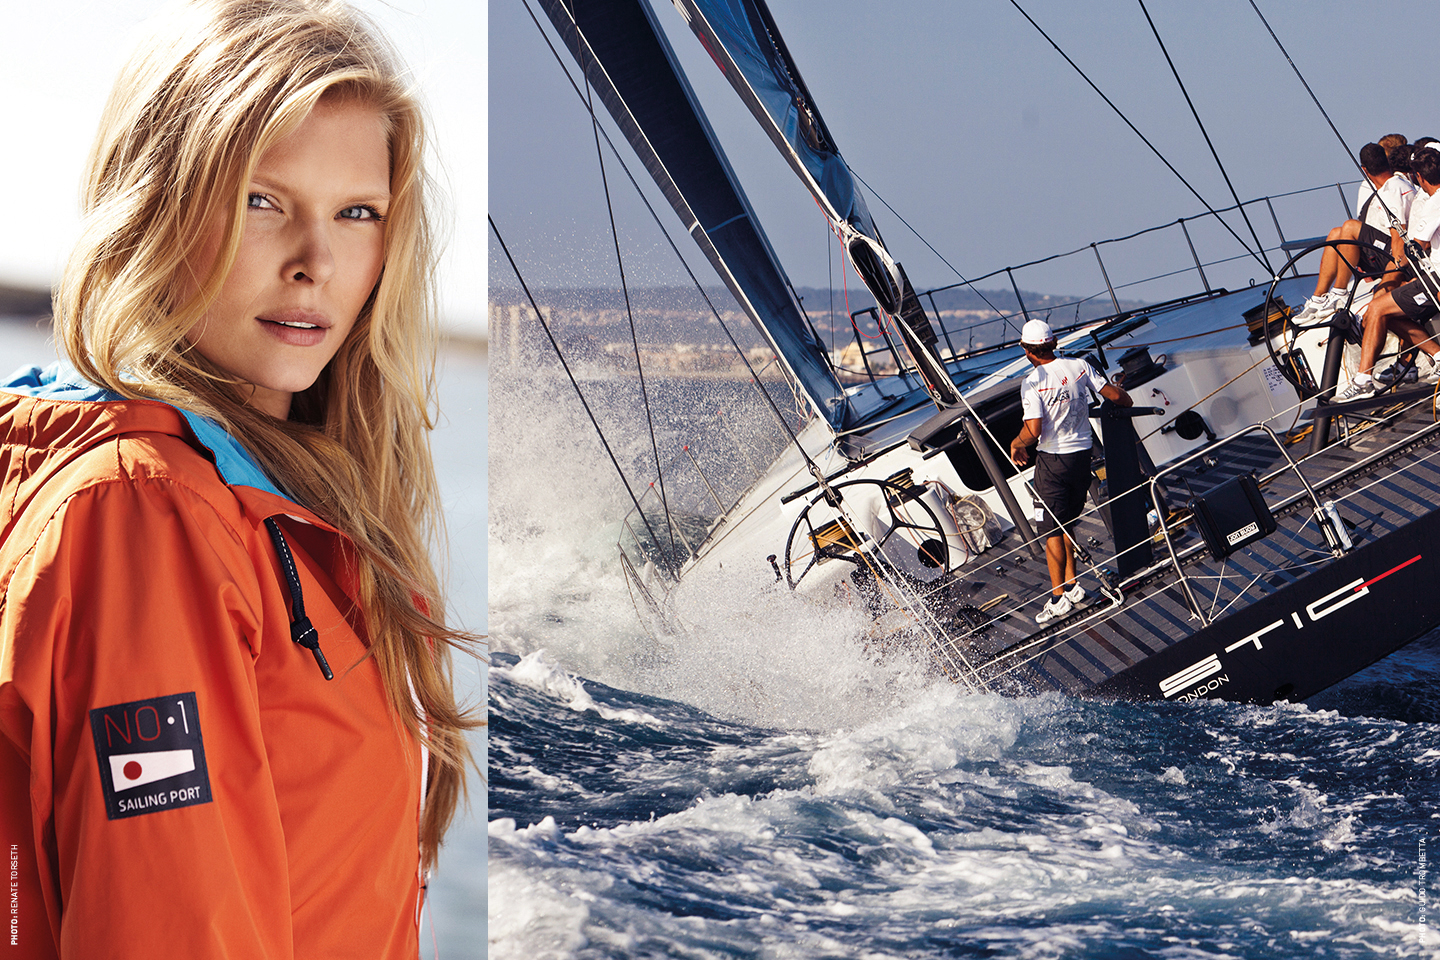 Helly Hansen sailing image and clothes